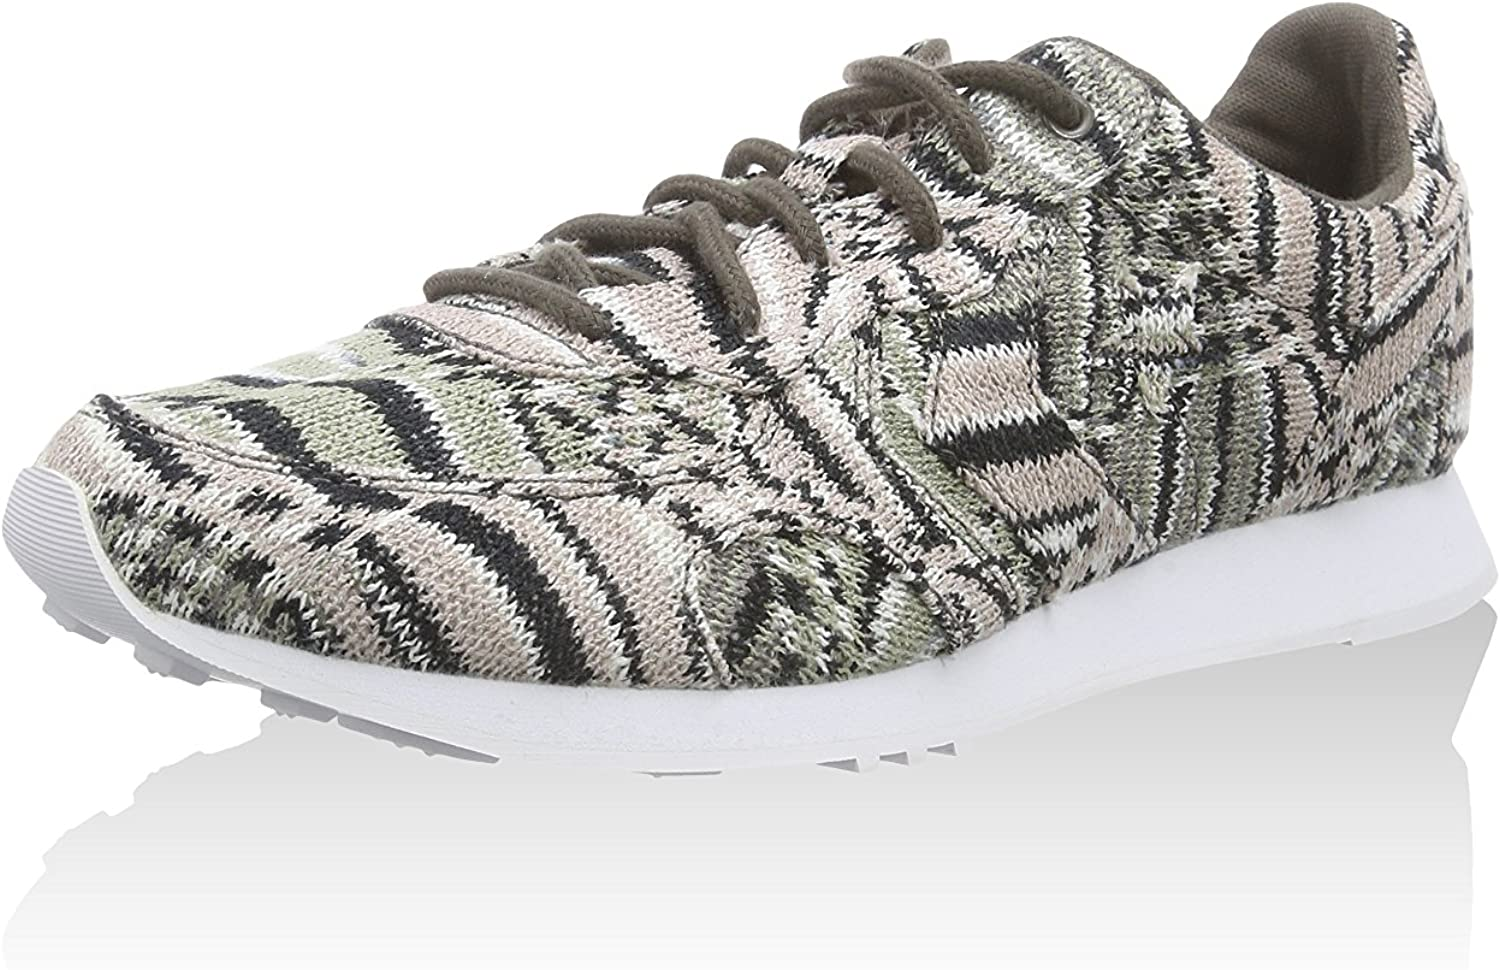 Converse Womens Aukland Racer Ox Printed Low Top Casual shoes